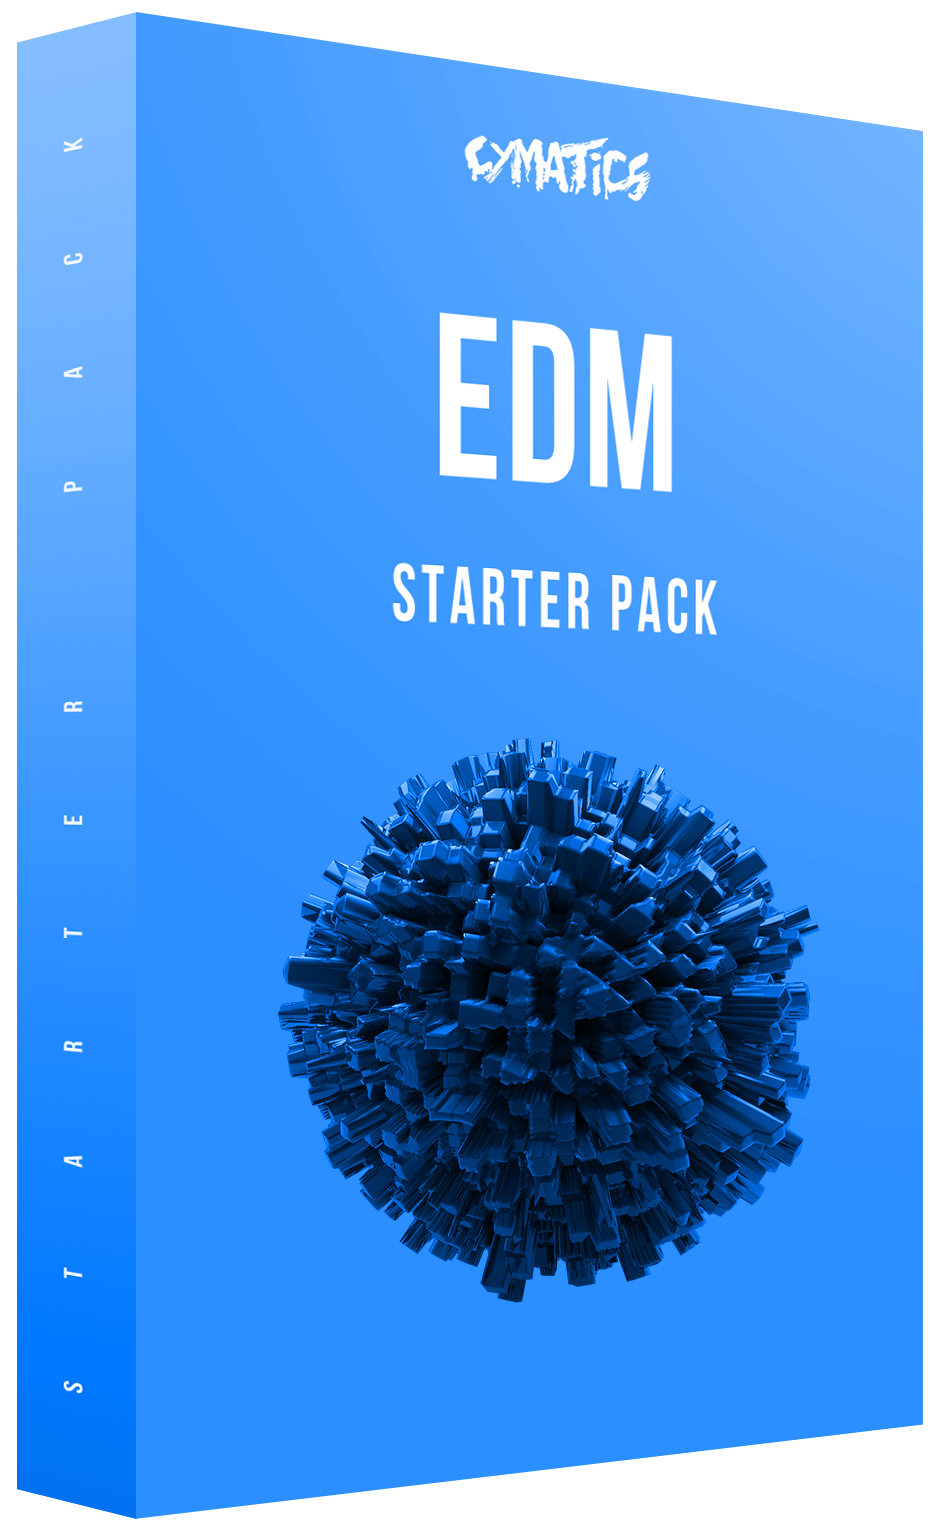 Free Download - EDM Starter Pack – Cymatics fm